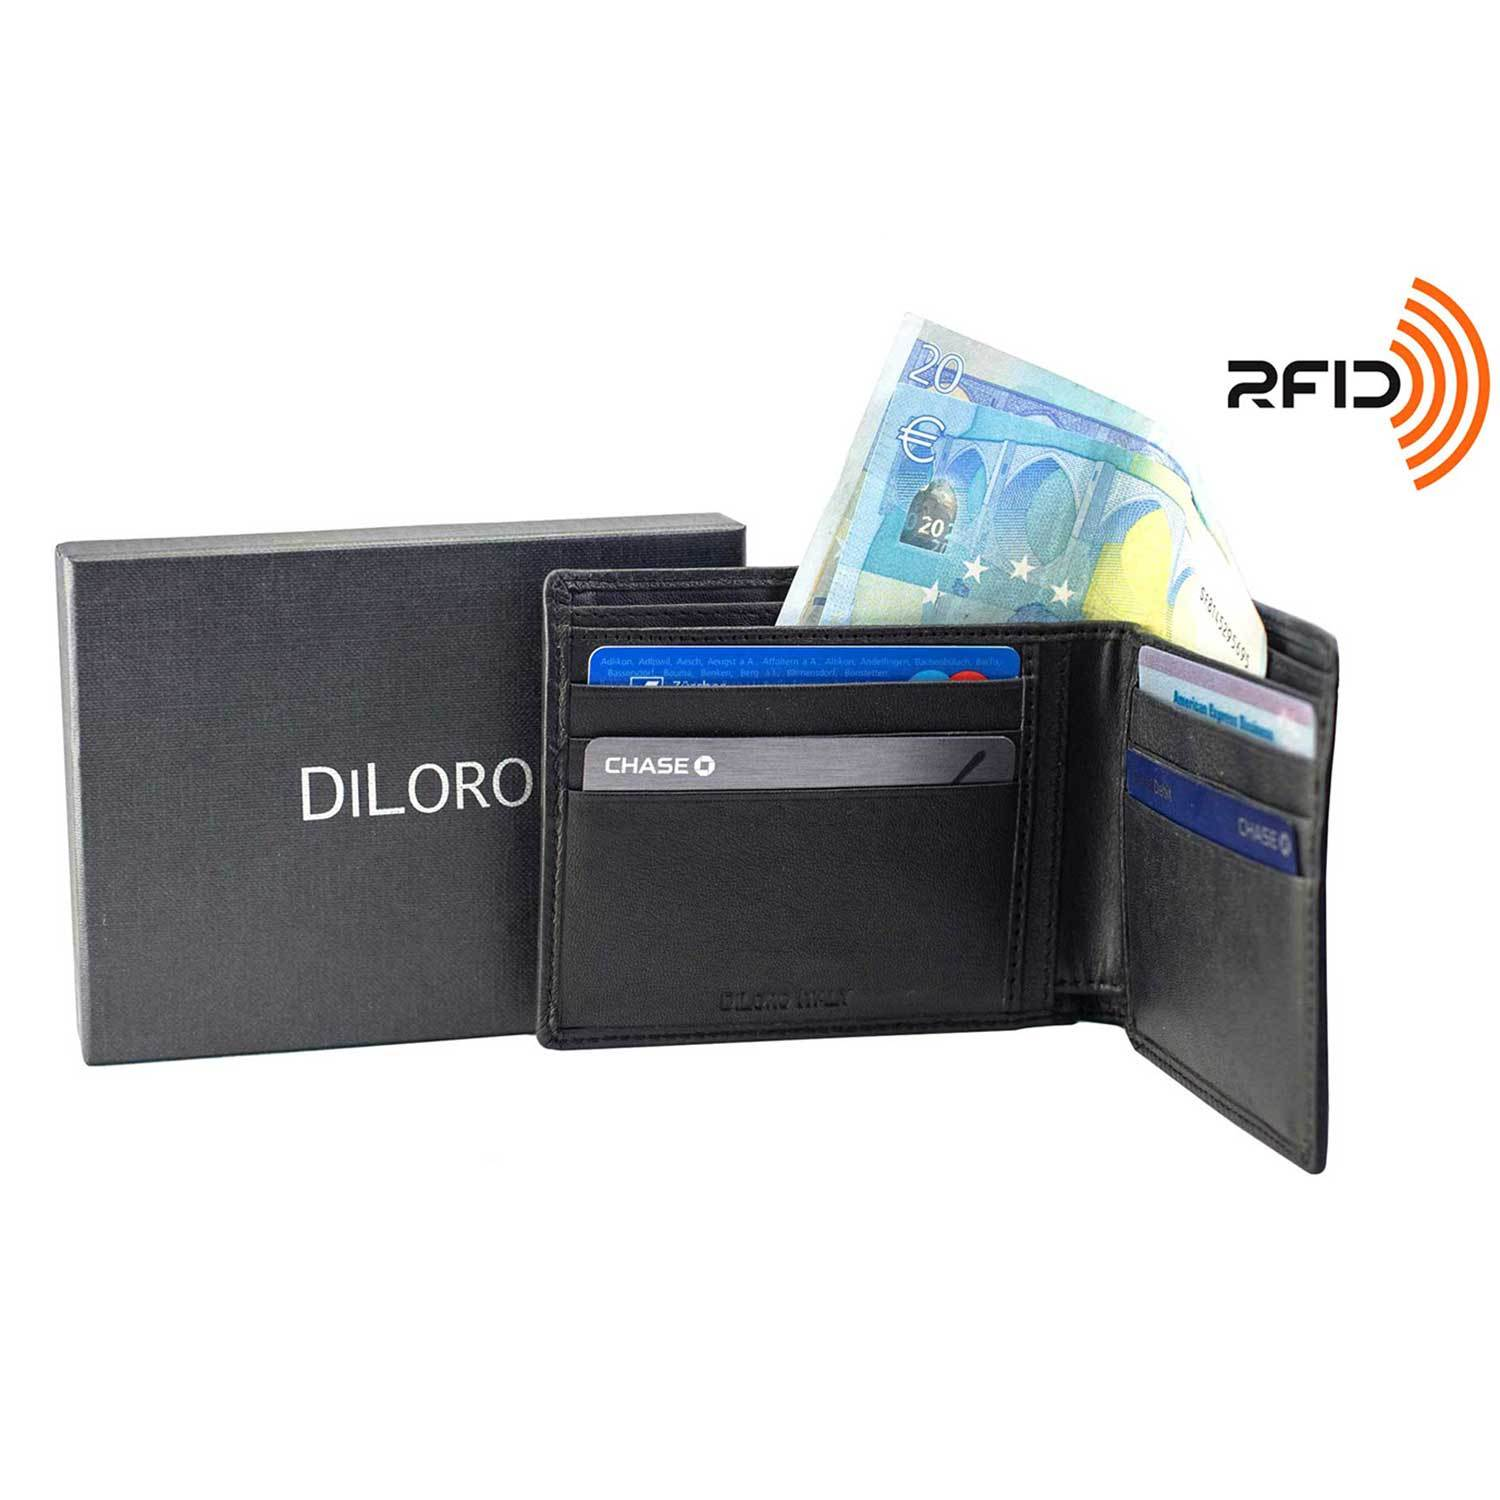 Wallet by DiLoro Italy Mens Wallets RFID Safe Genuine Leather Black Slim 2403-BK - Front, Open View with DiLoro Gift and RFID Logo